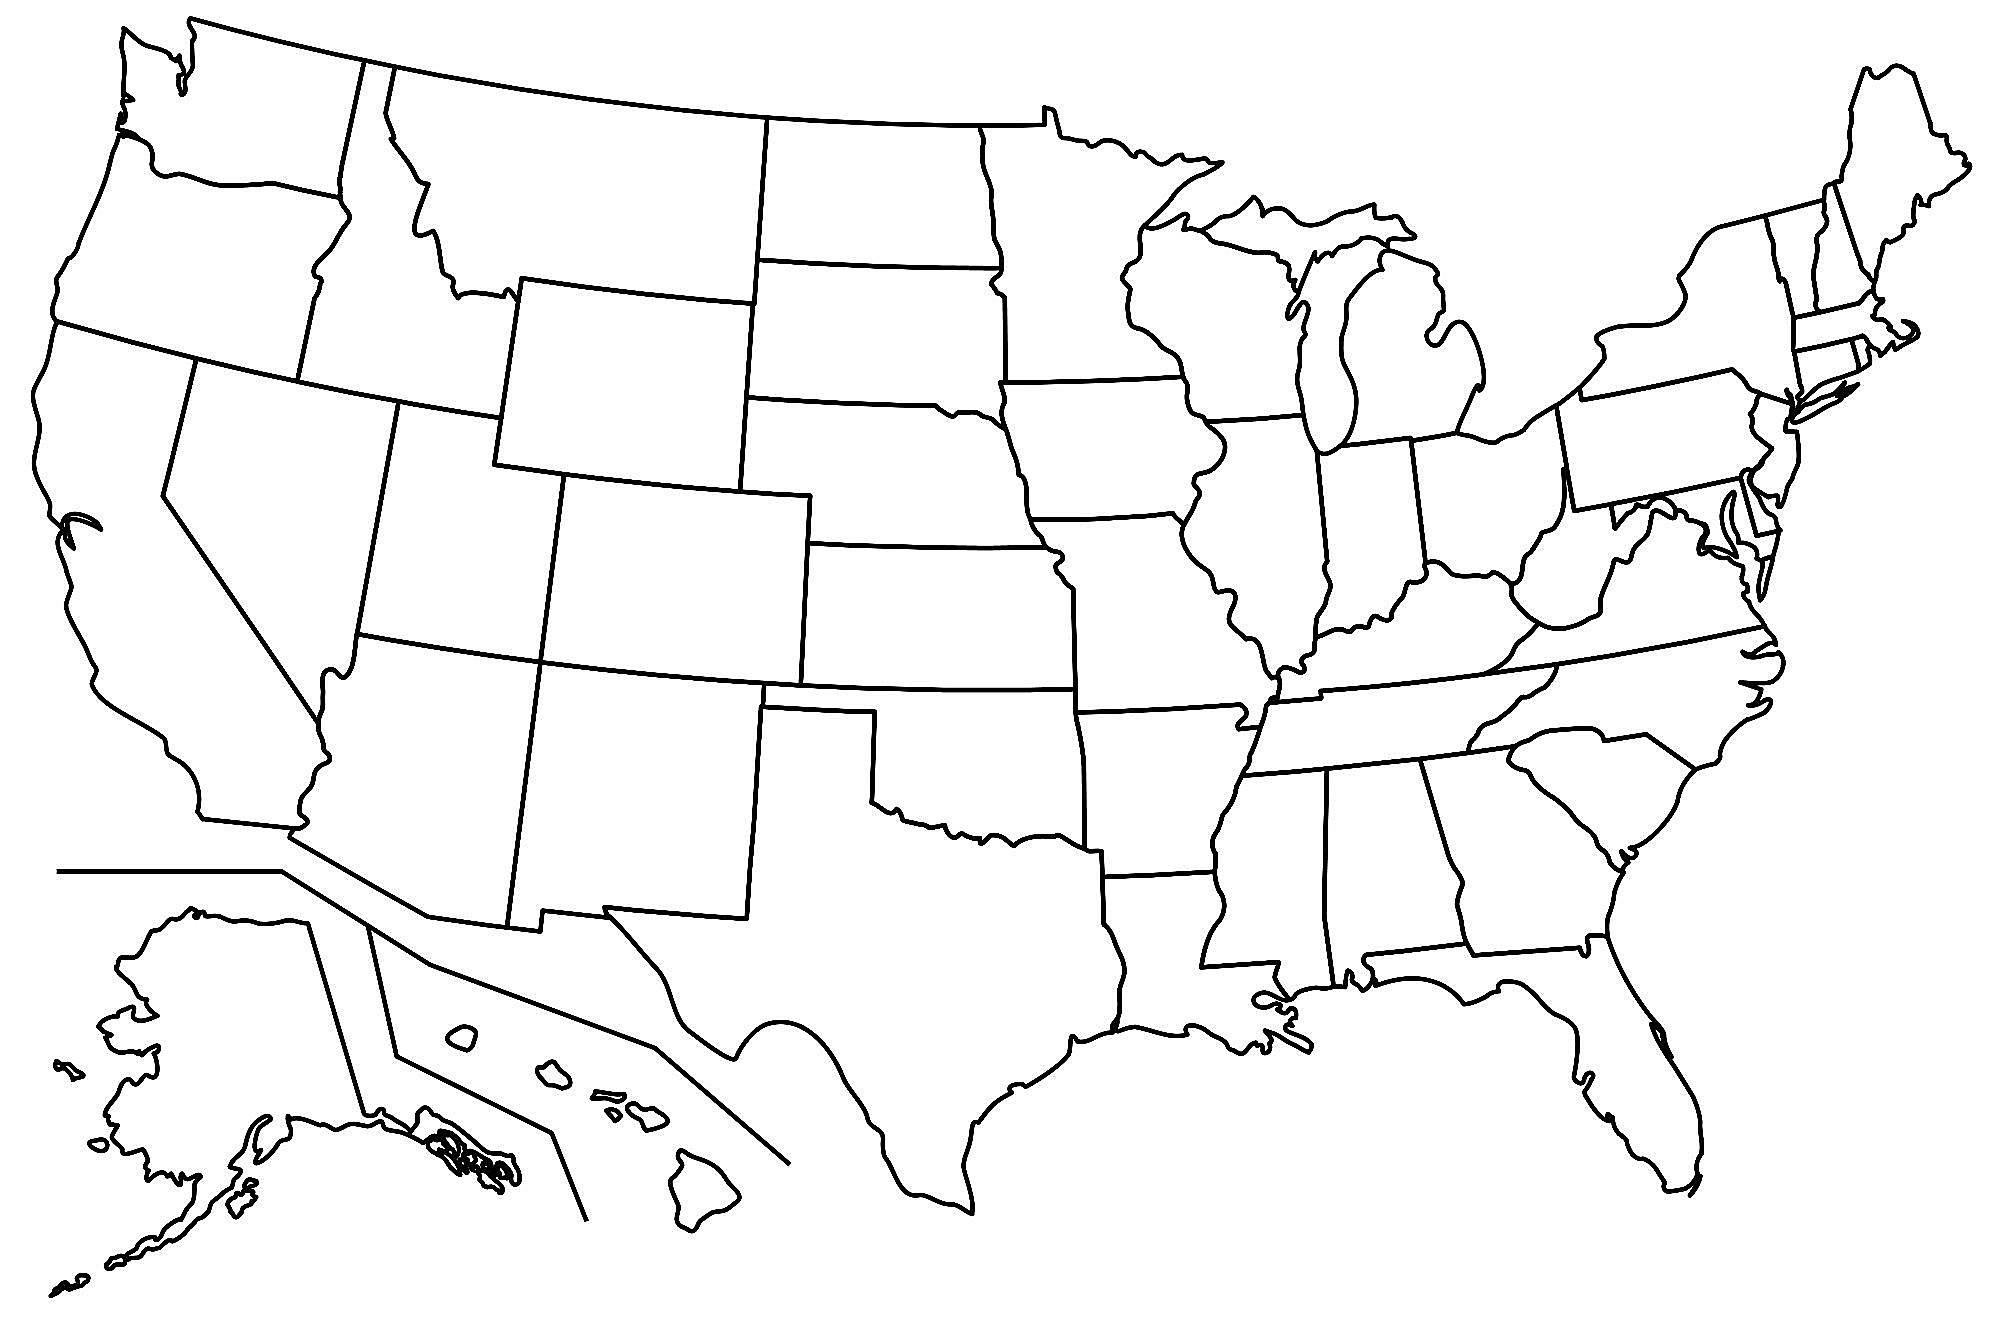 Blank Maps Of The US And Other Countries - Us map unlabeled